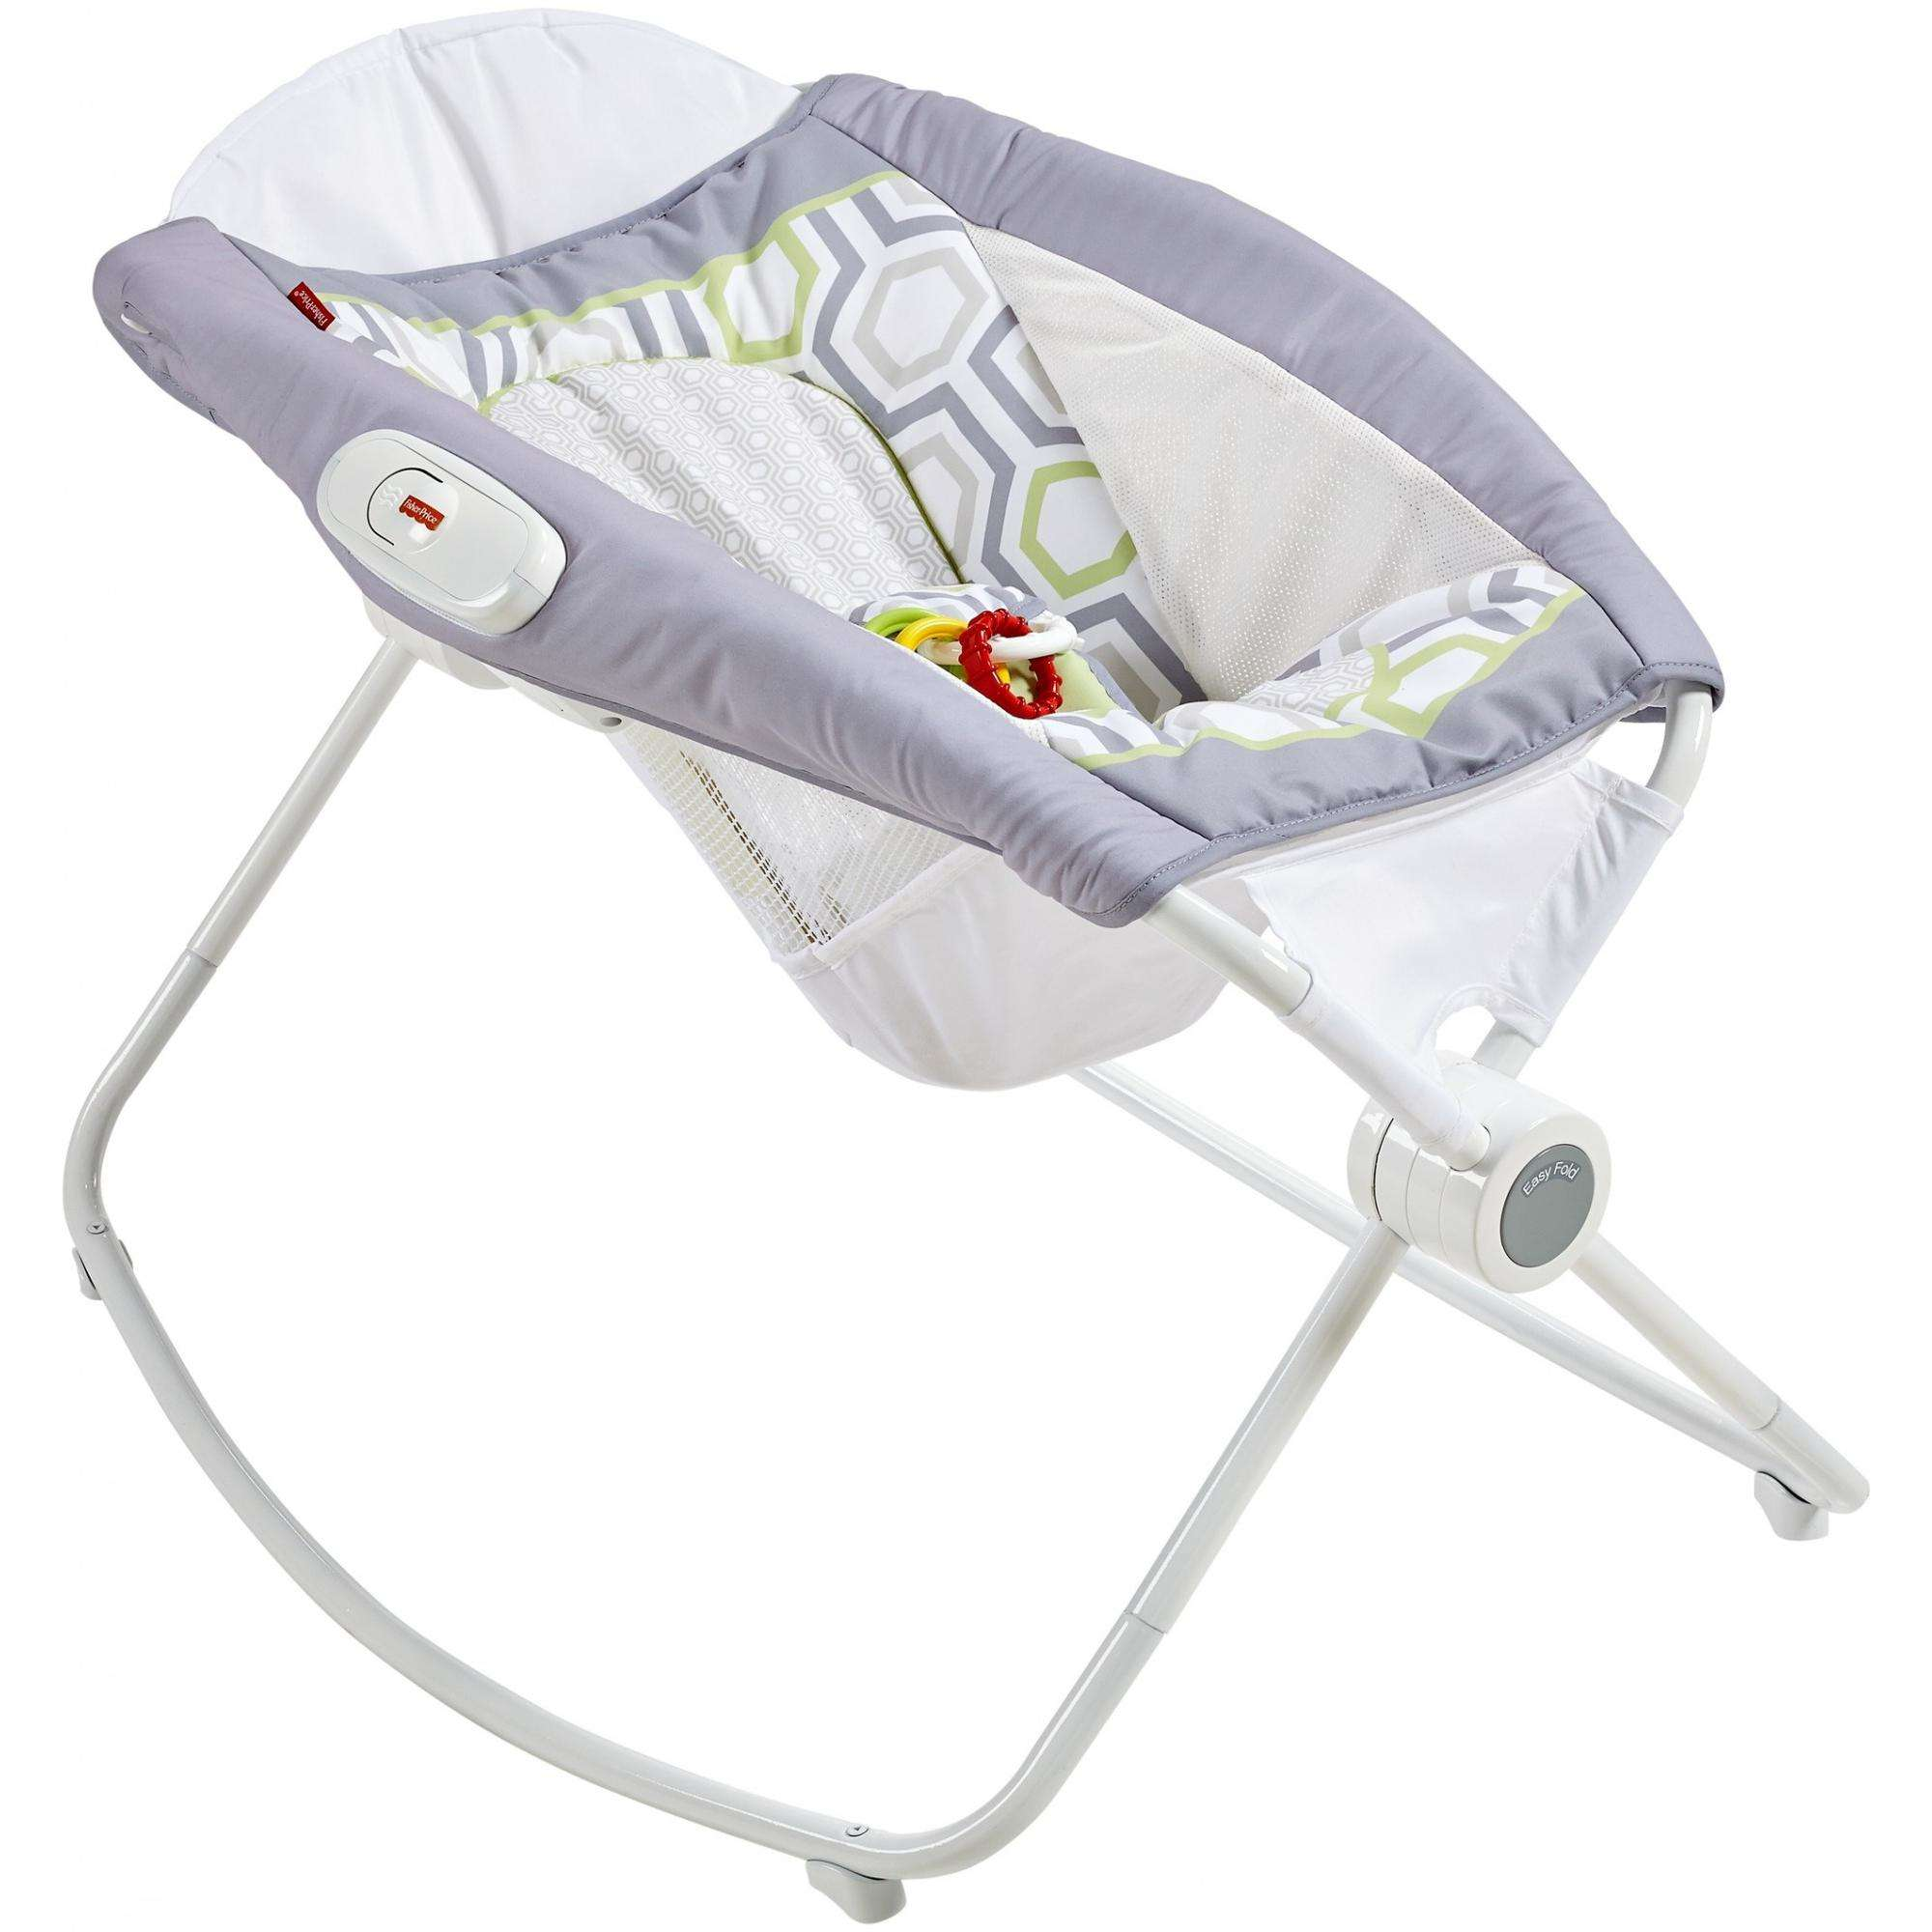 Fisher-Price Rock 'n Play Sleeper - Geo Meadow